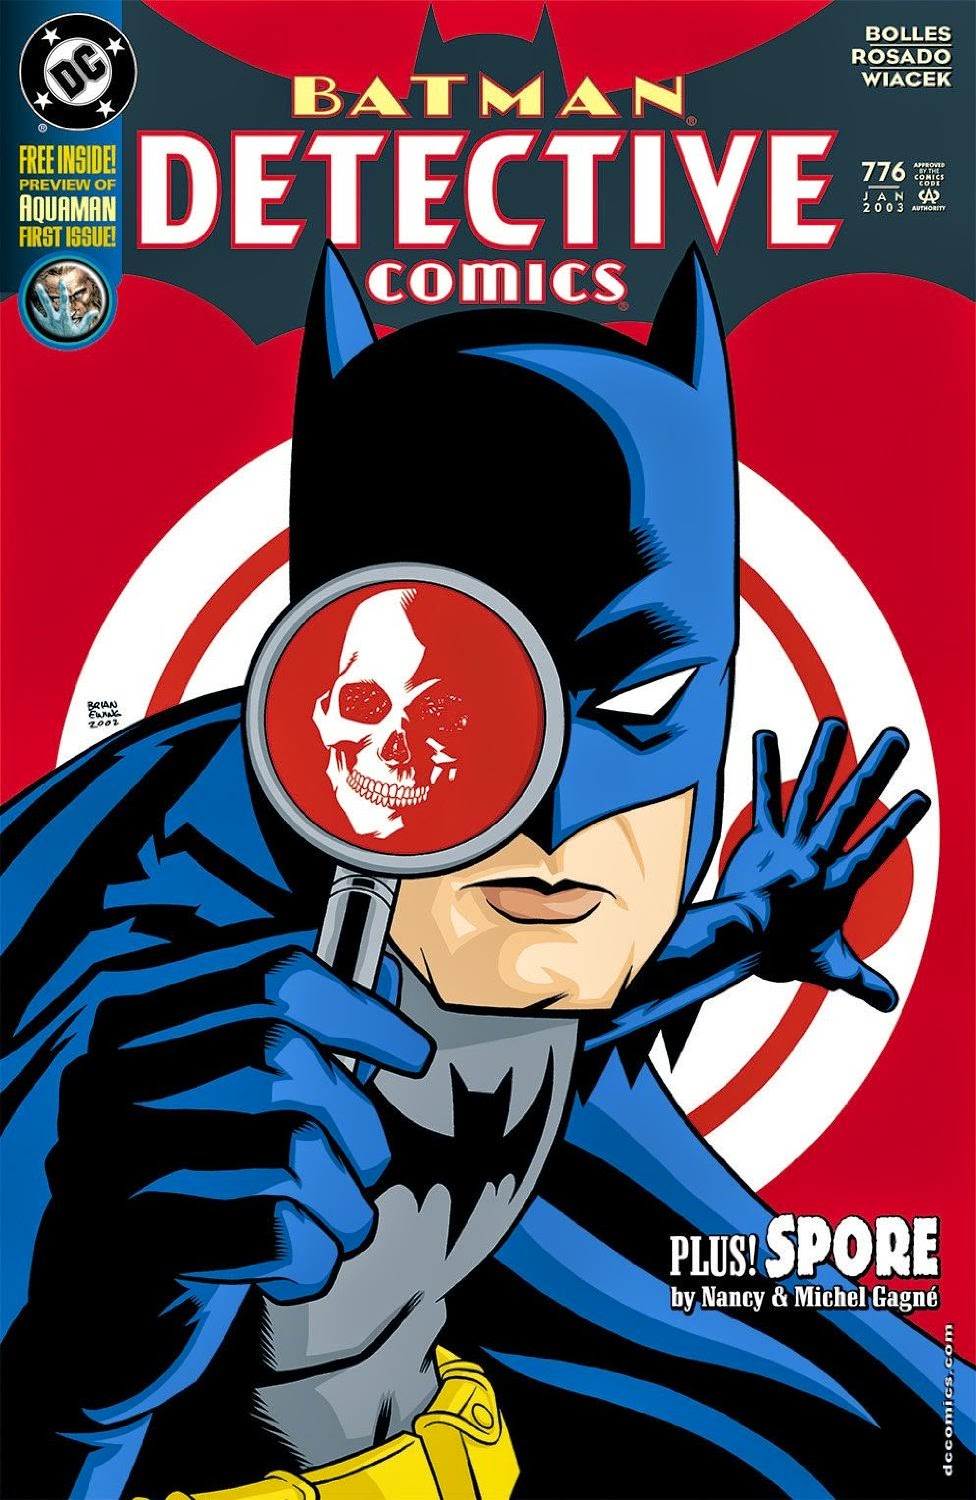 DC Comics - Detective Comics #776 Cover Artwork by Brian Ewing